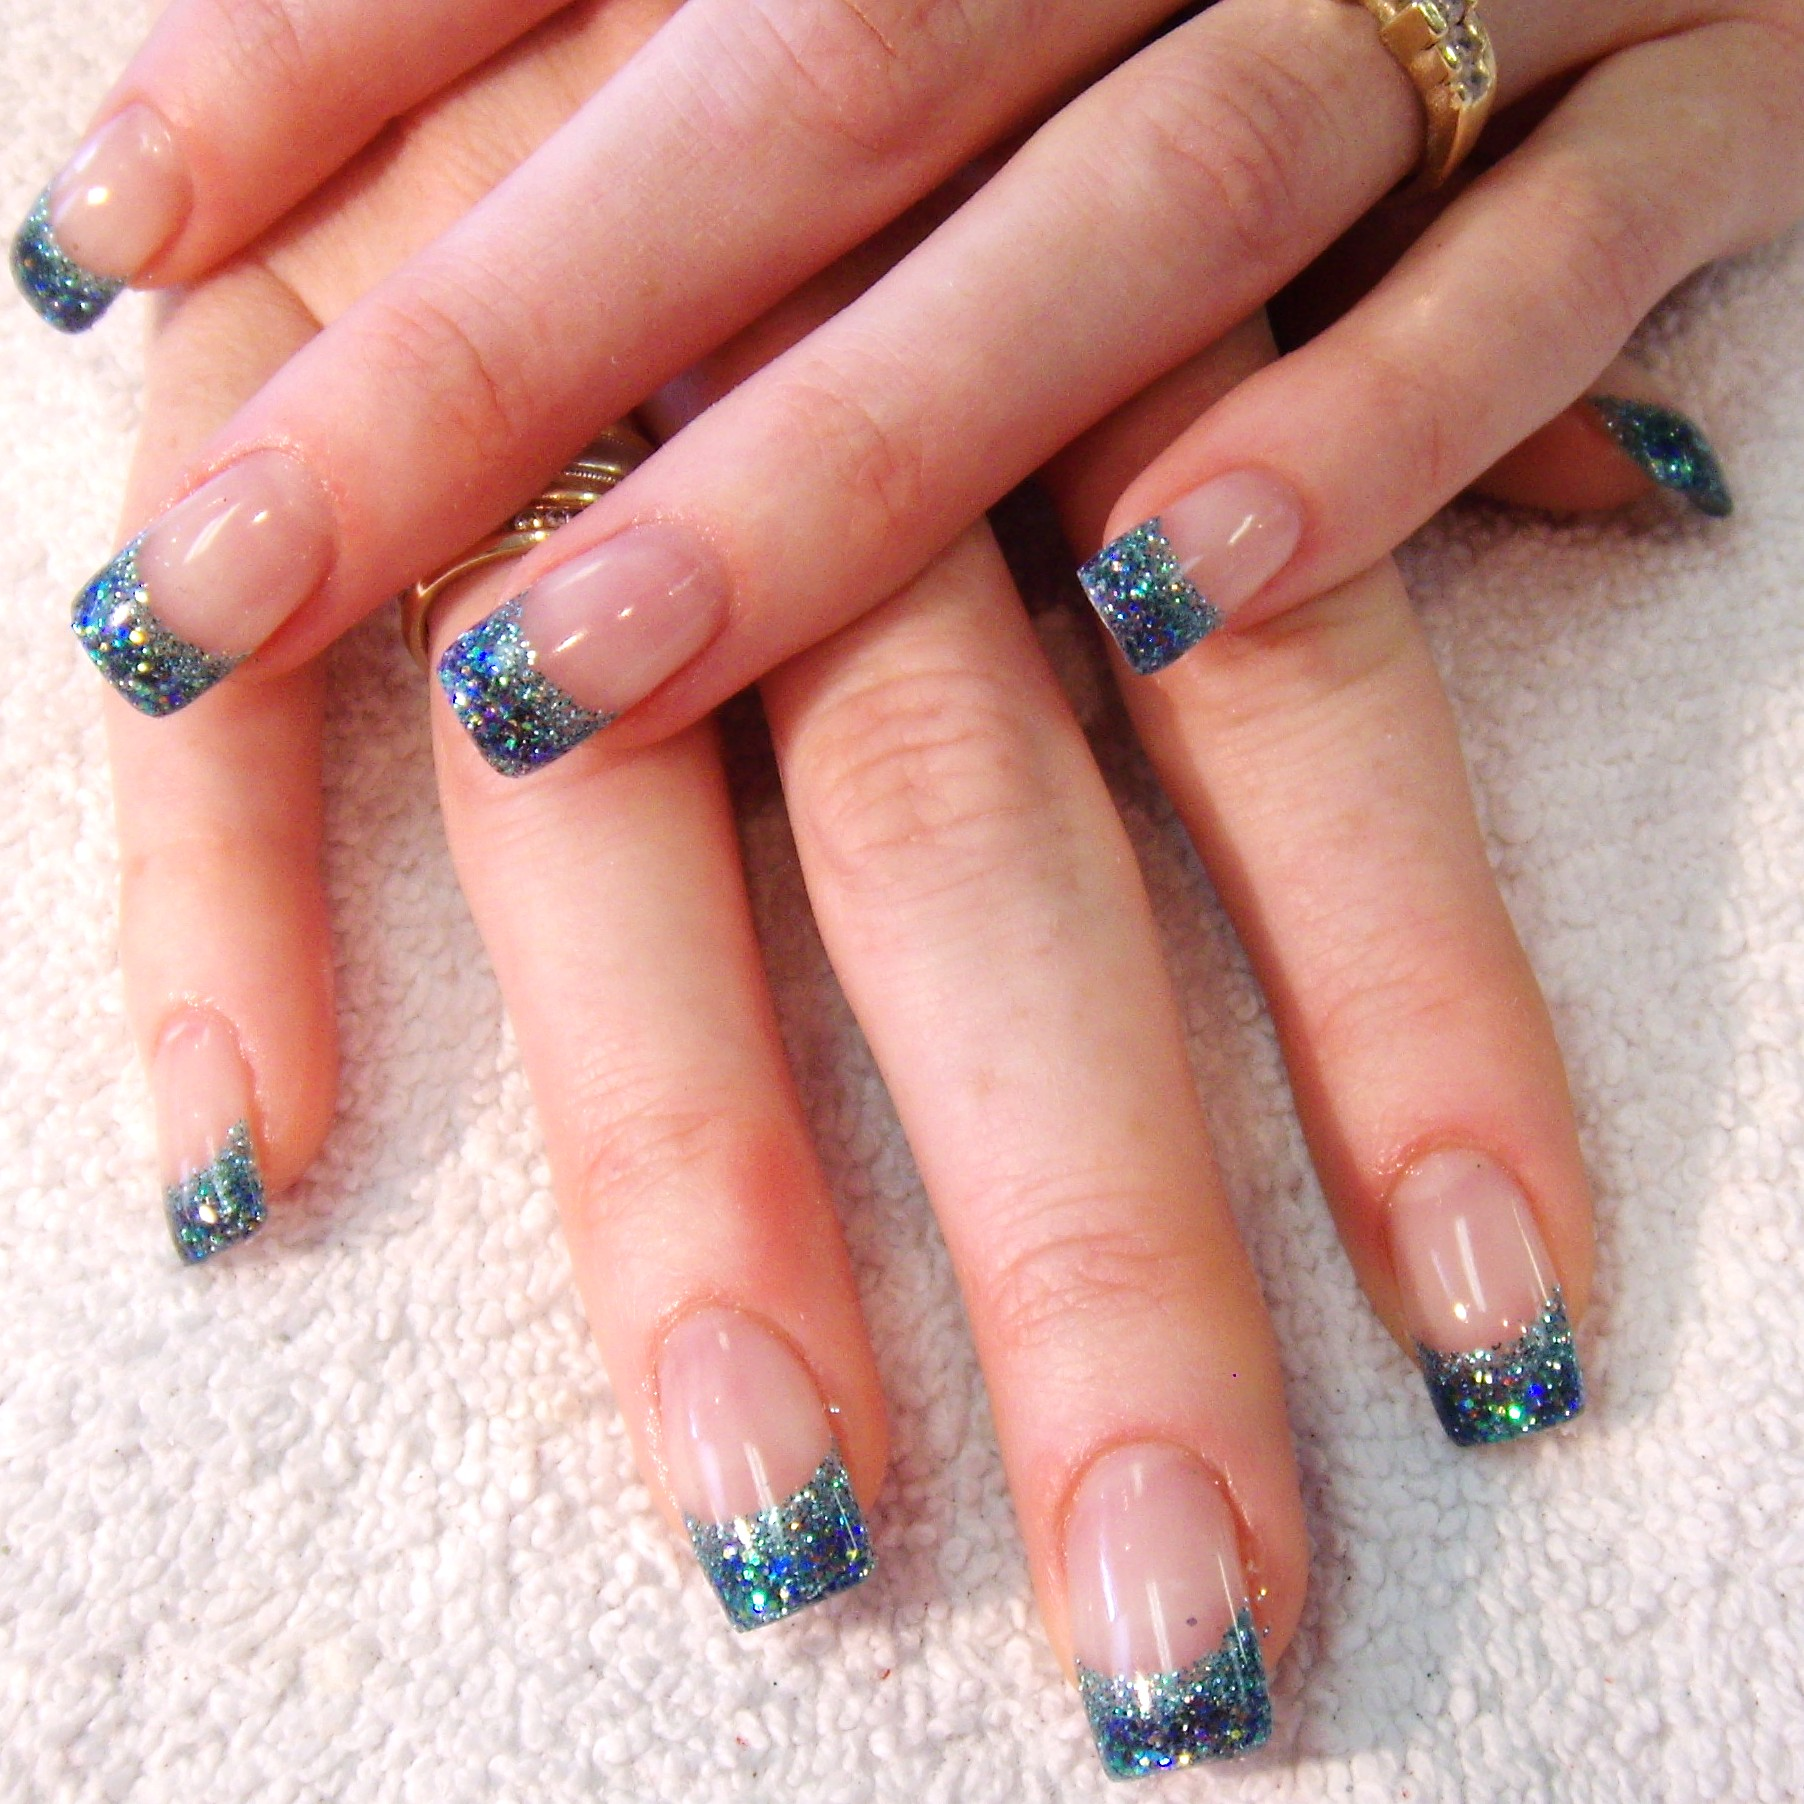 gel nail designs nail designs 2014 tumblr step by step for short nails with rhinestones with